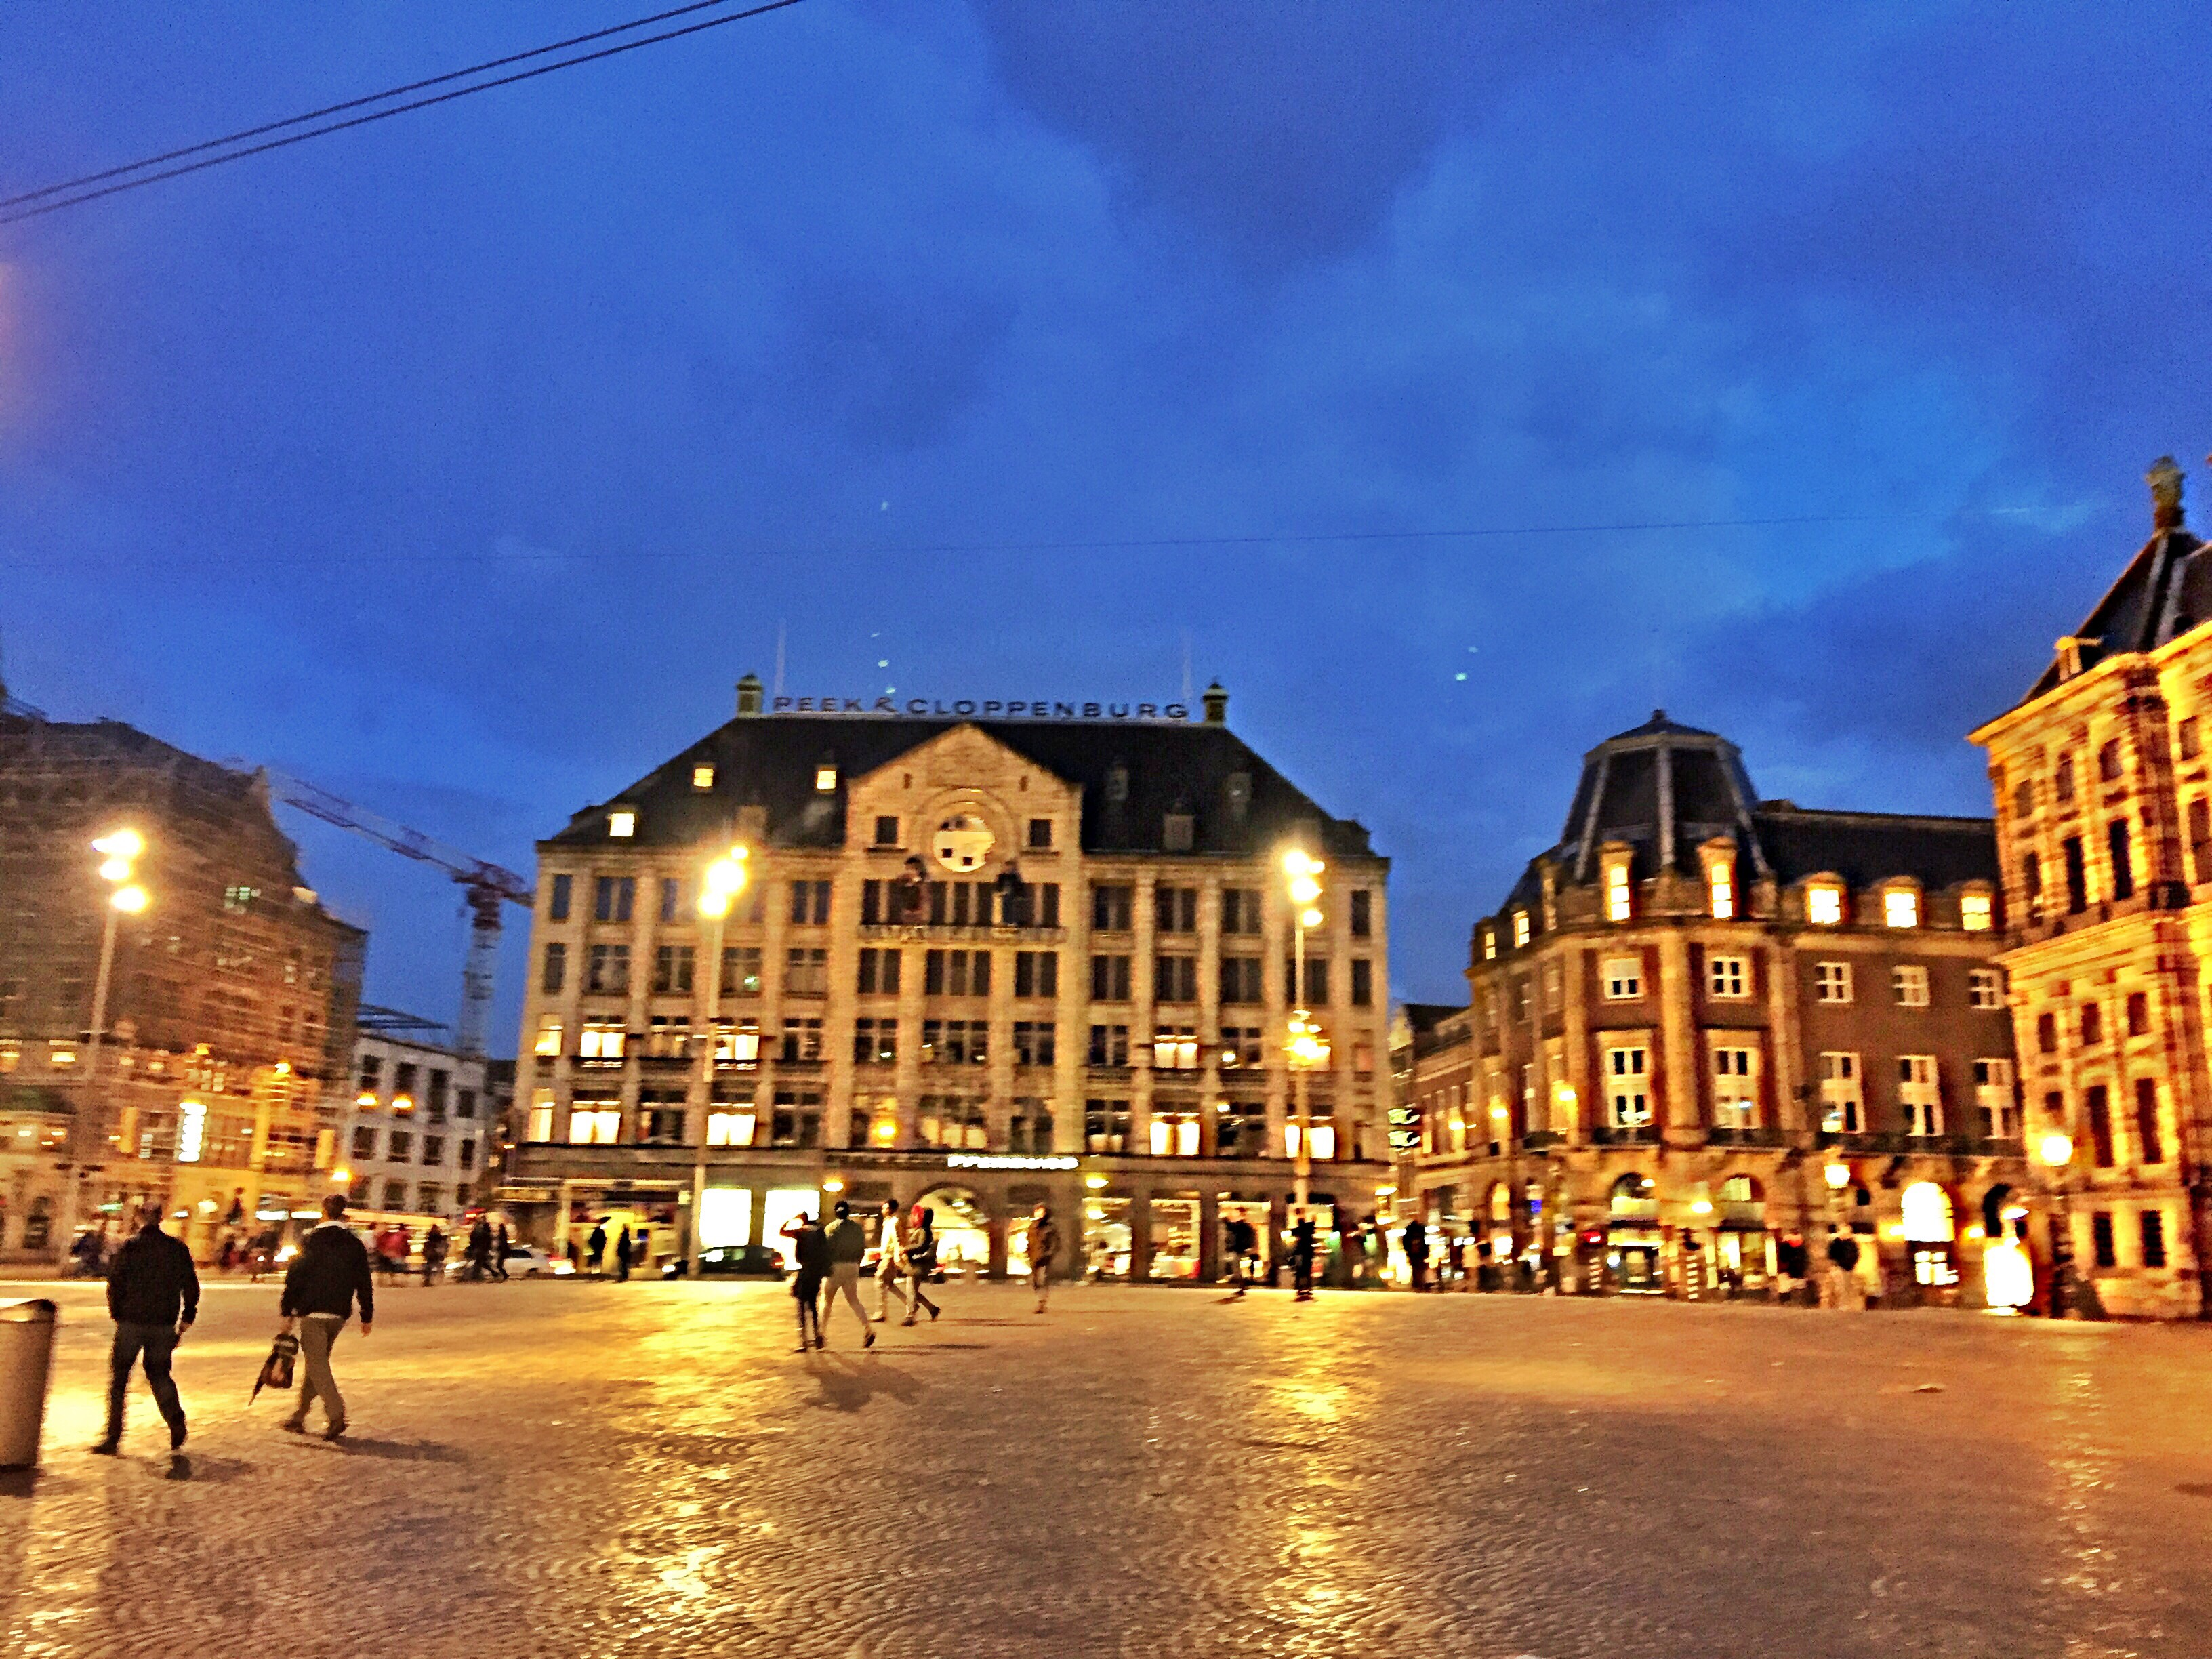 The Dam Square - Peek Cloppenburg